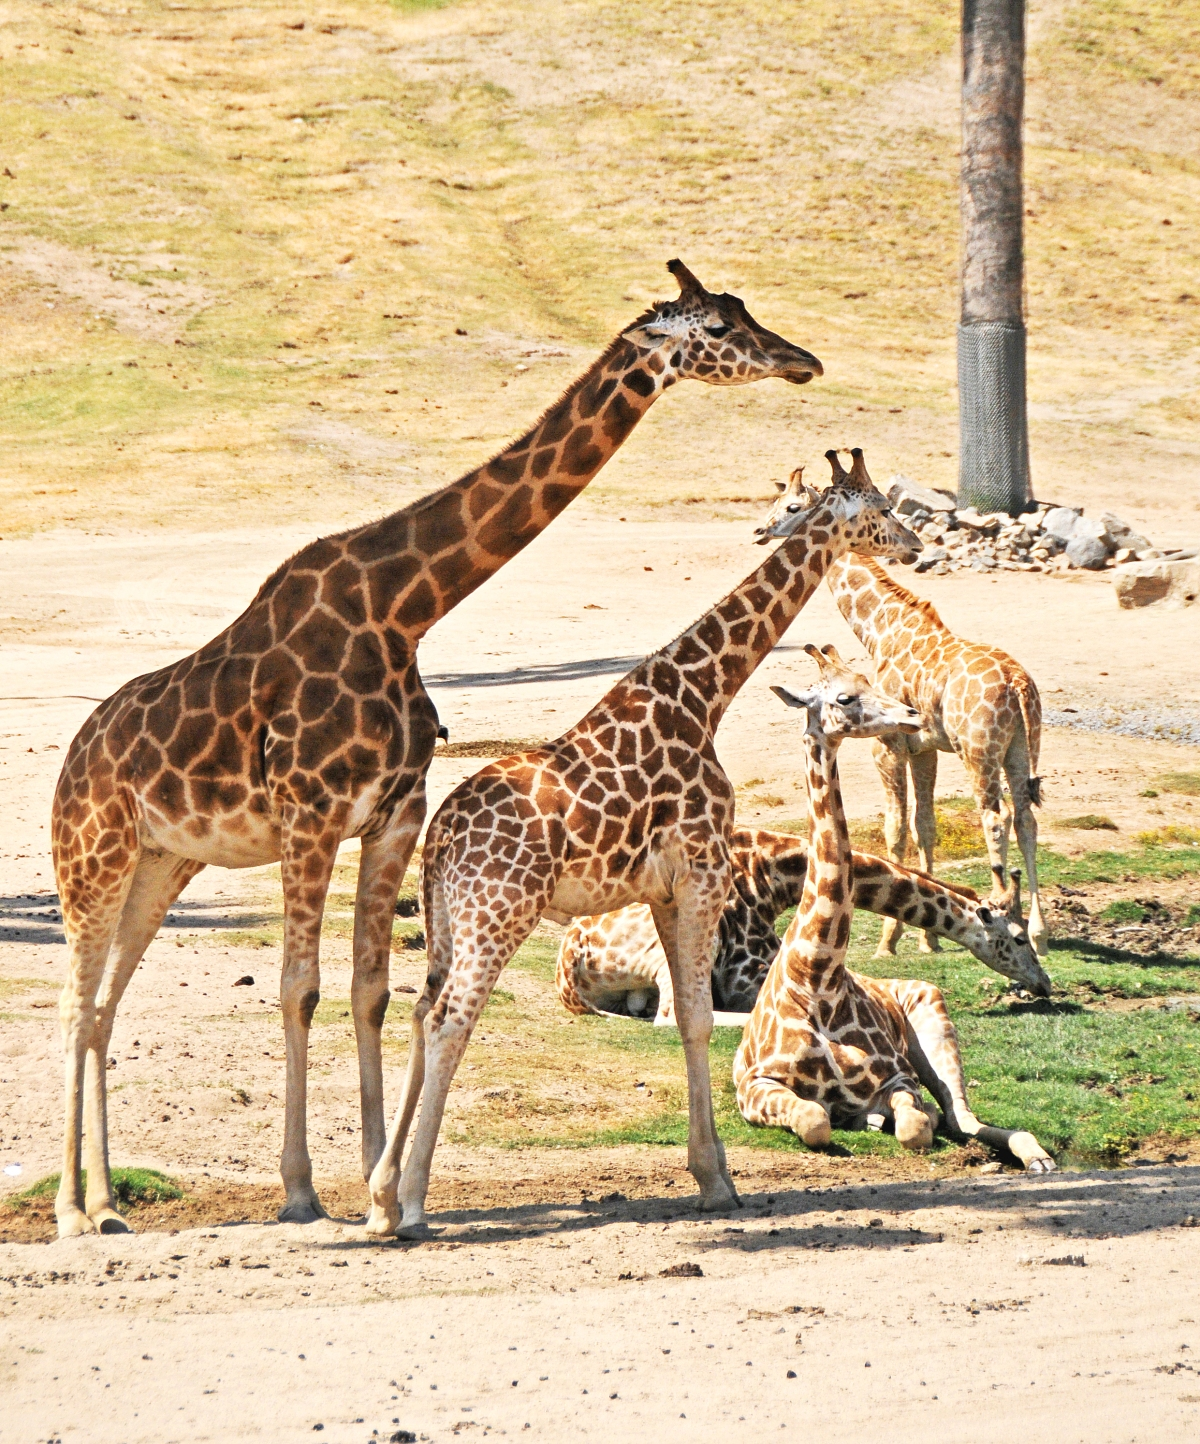 Hanging Out Giraffes - San Diego Safari Park